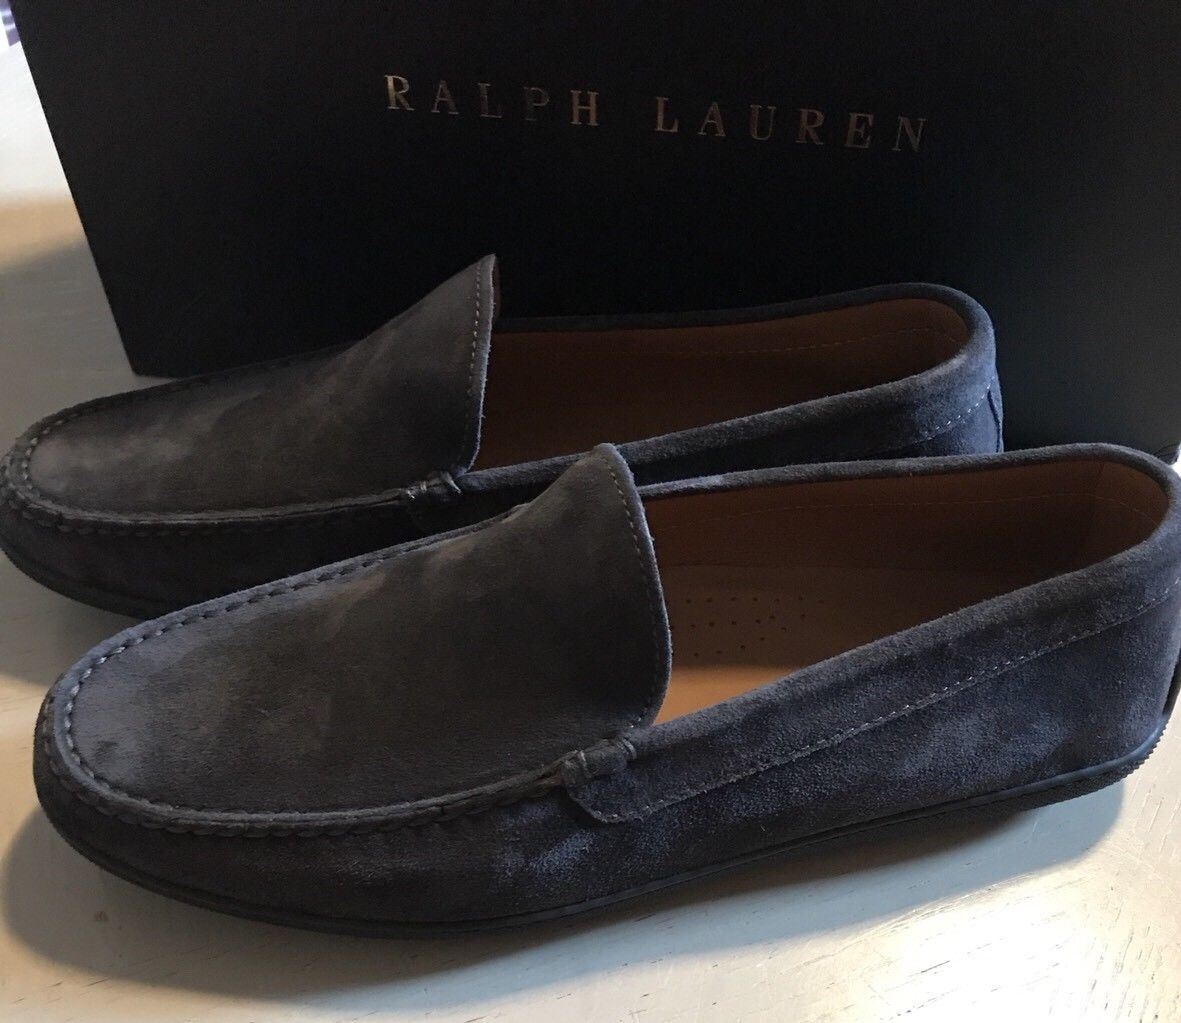 New $525 Men's Ralph Lauren Purple Label Suede Driver Shoes Gray 10.5 US(43.5Eu) - BAYSUPERSTORE